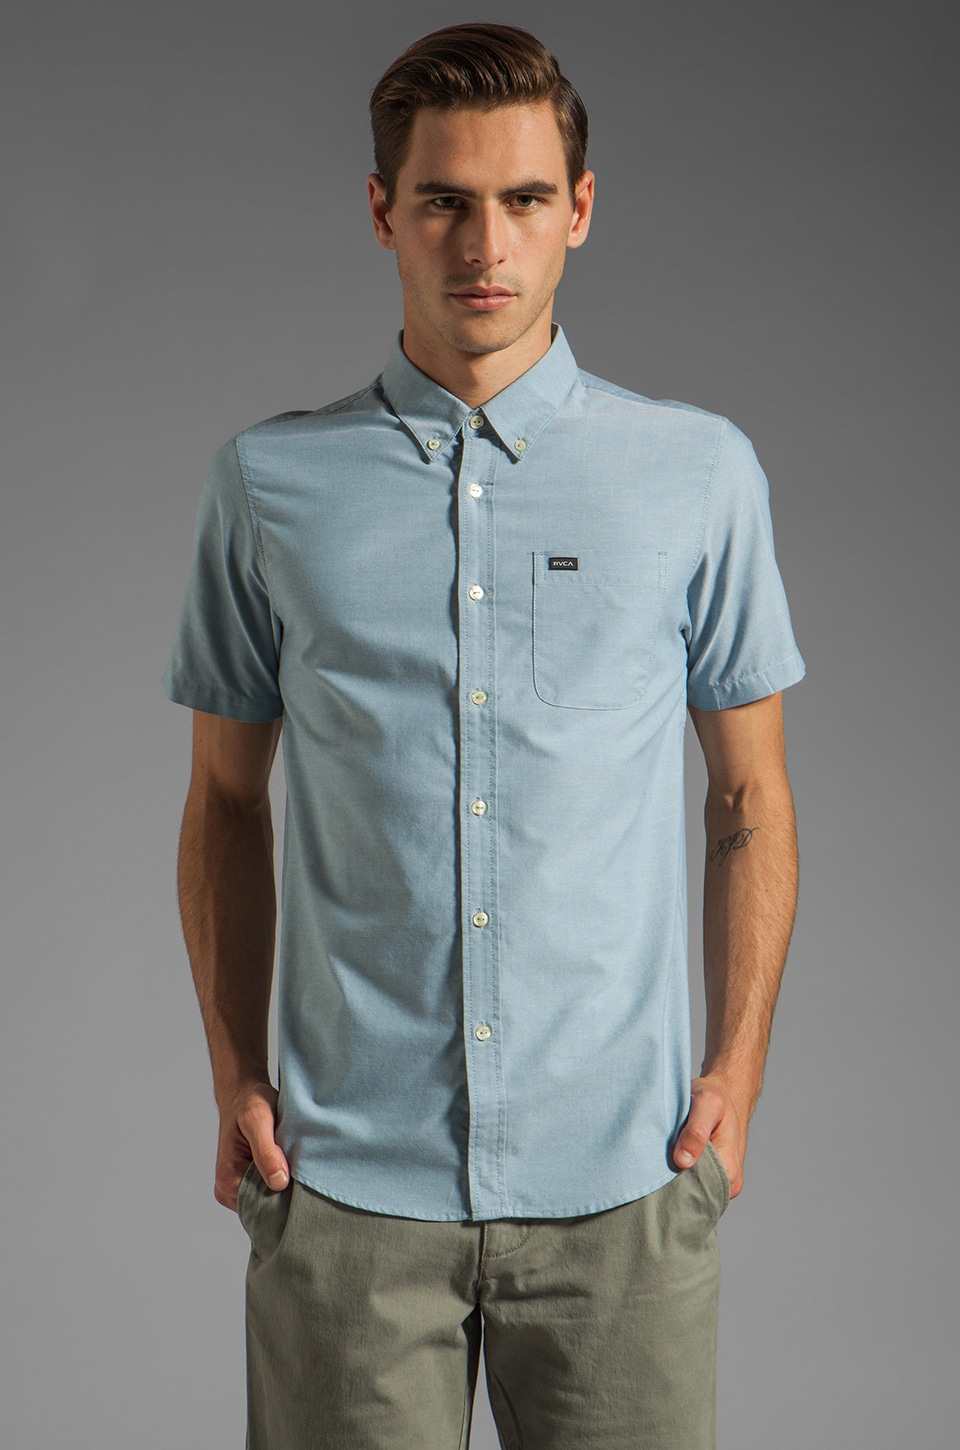 RVCA That'll Do Oxford S/S Shirt in Aegean Blue